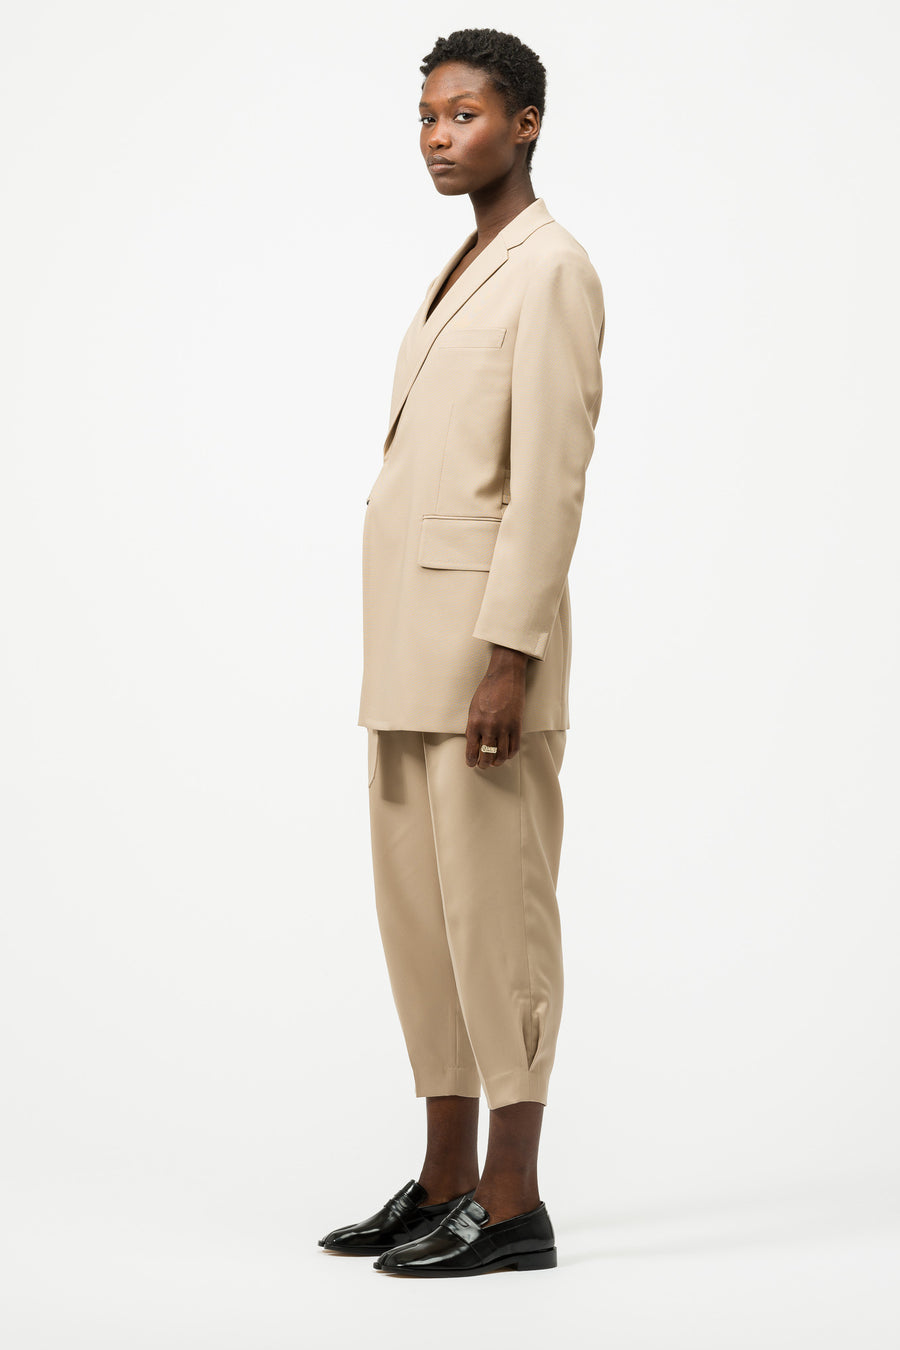 HYKE Double-Breasted Sport Coat in Tan - Notre